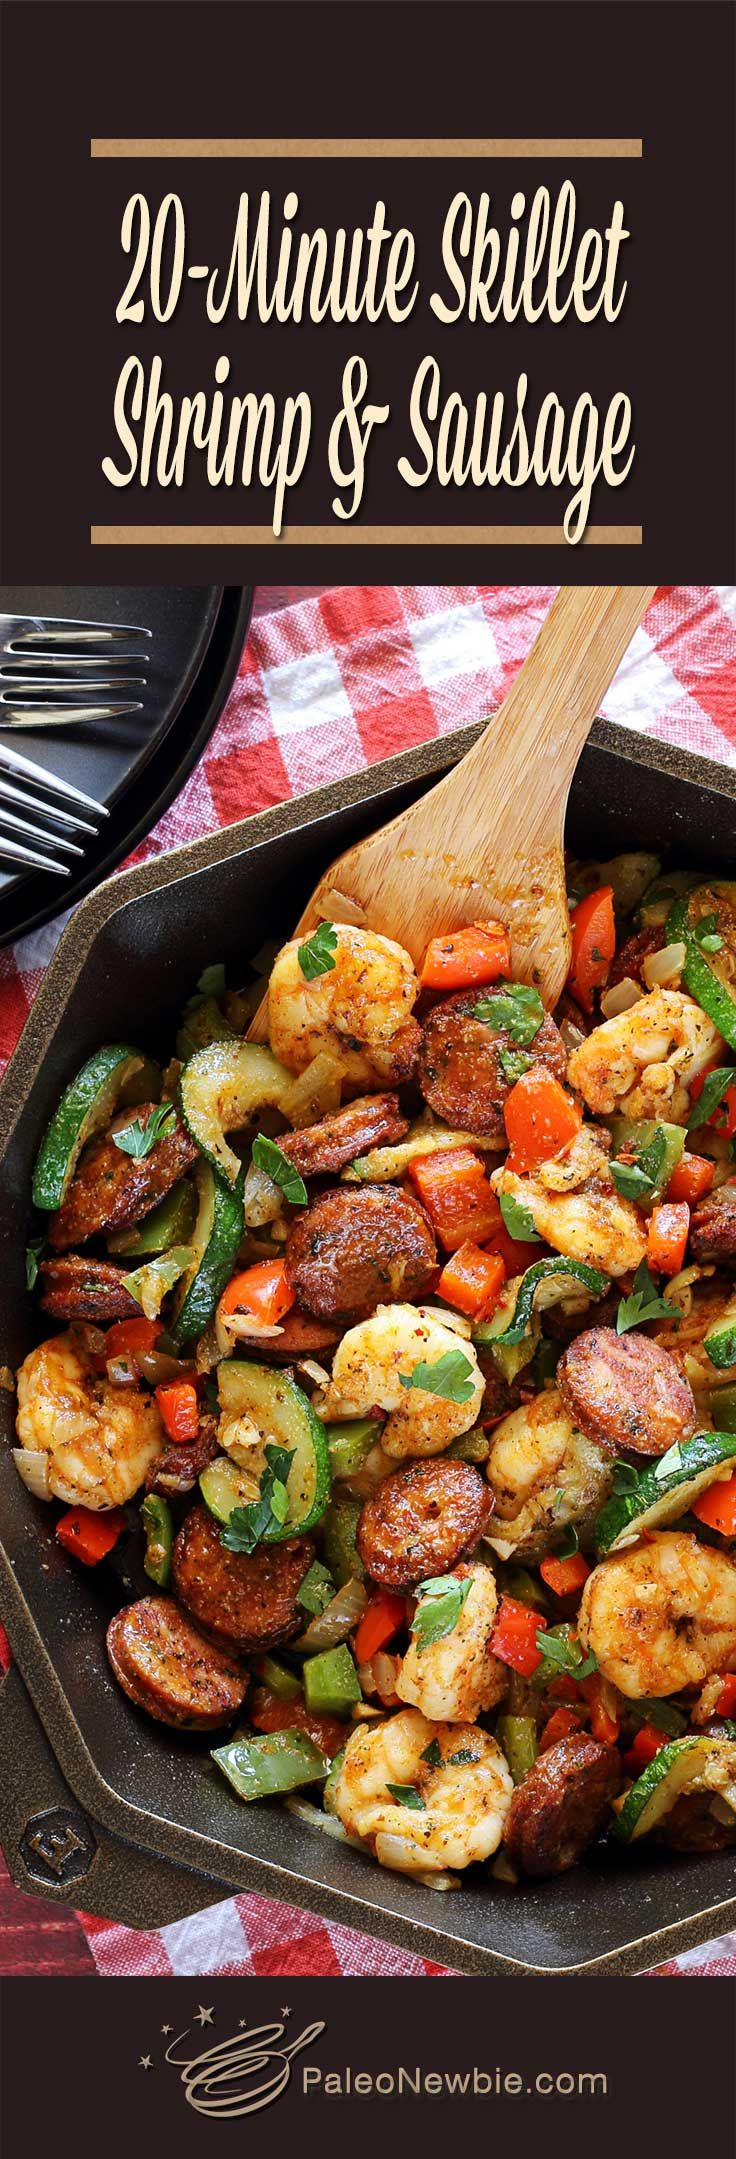 You'll have this Smoked Sausage & Shrimp Paleo Skillet on the table and ready to eat in 20 easy minutes! http://www.my-paleo.com